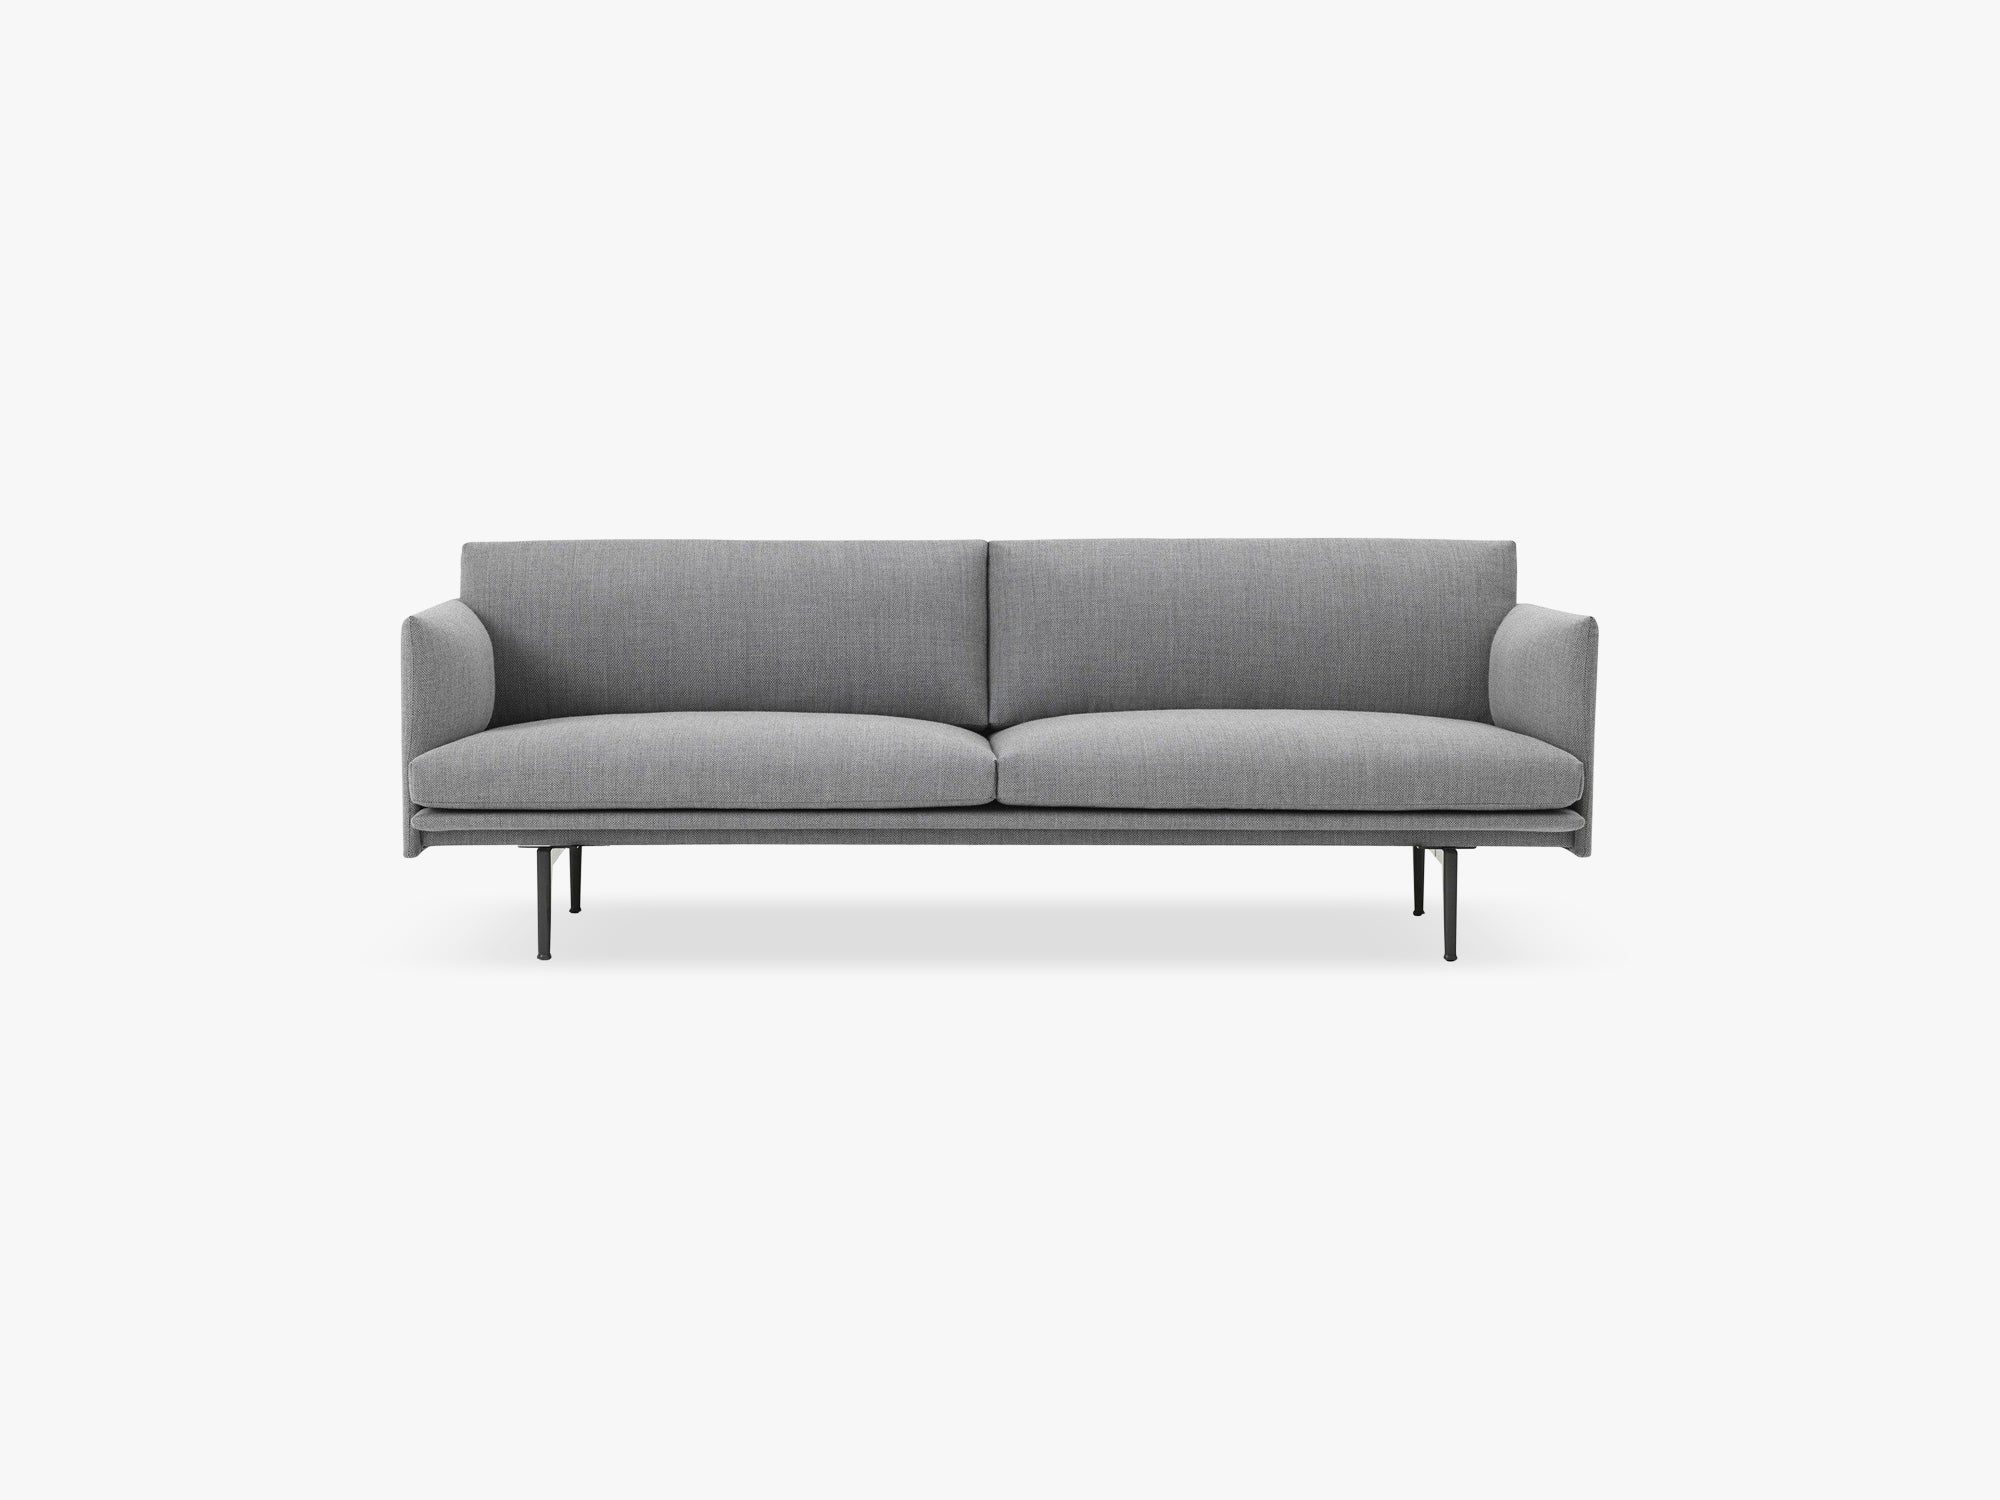 Outline Sofa - 3-Seater, Fiord 151 fra Muuto